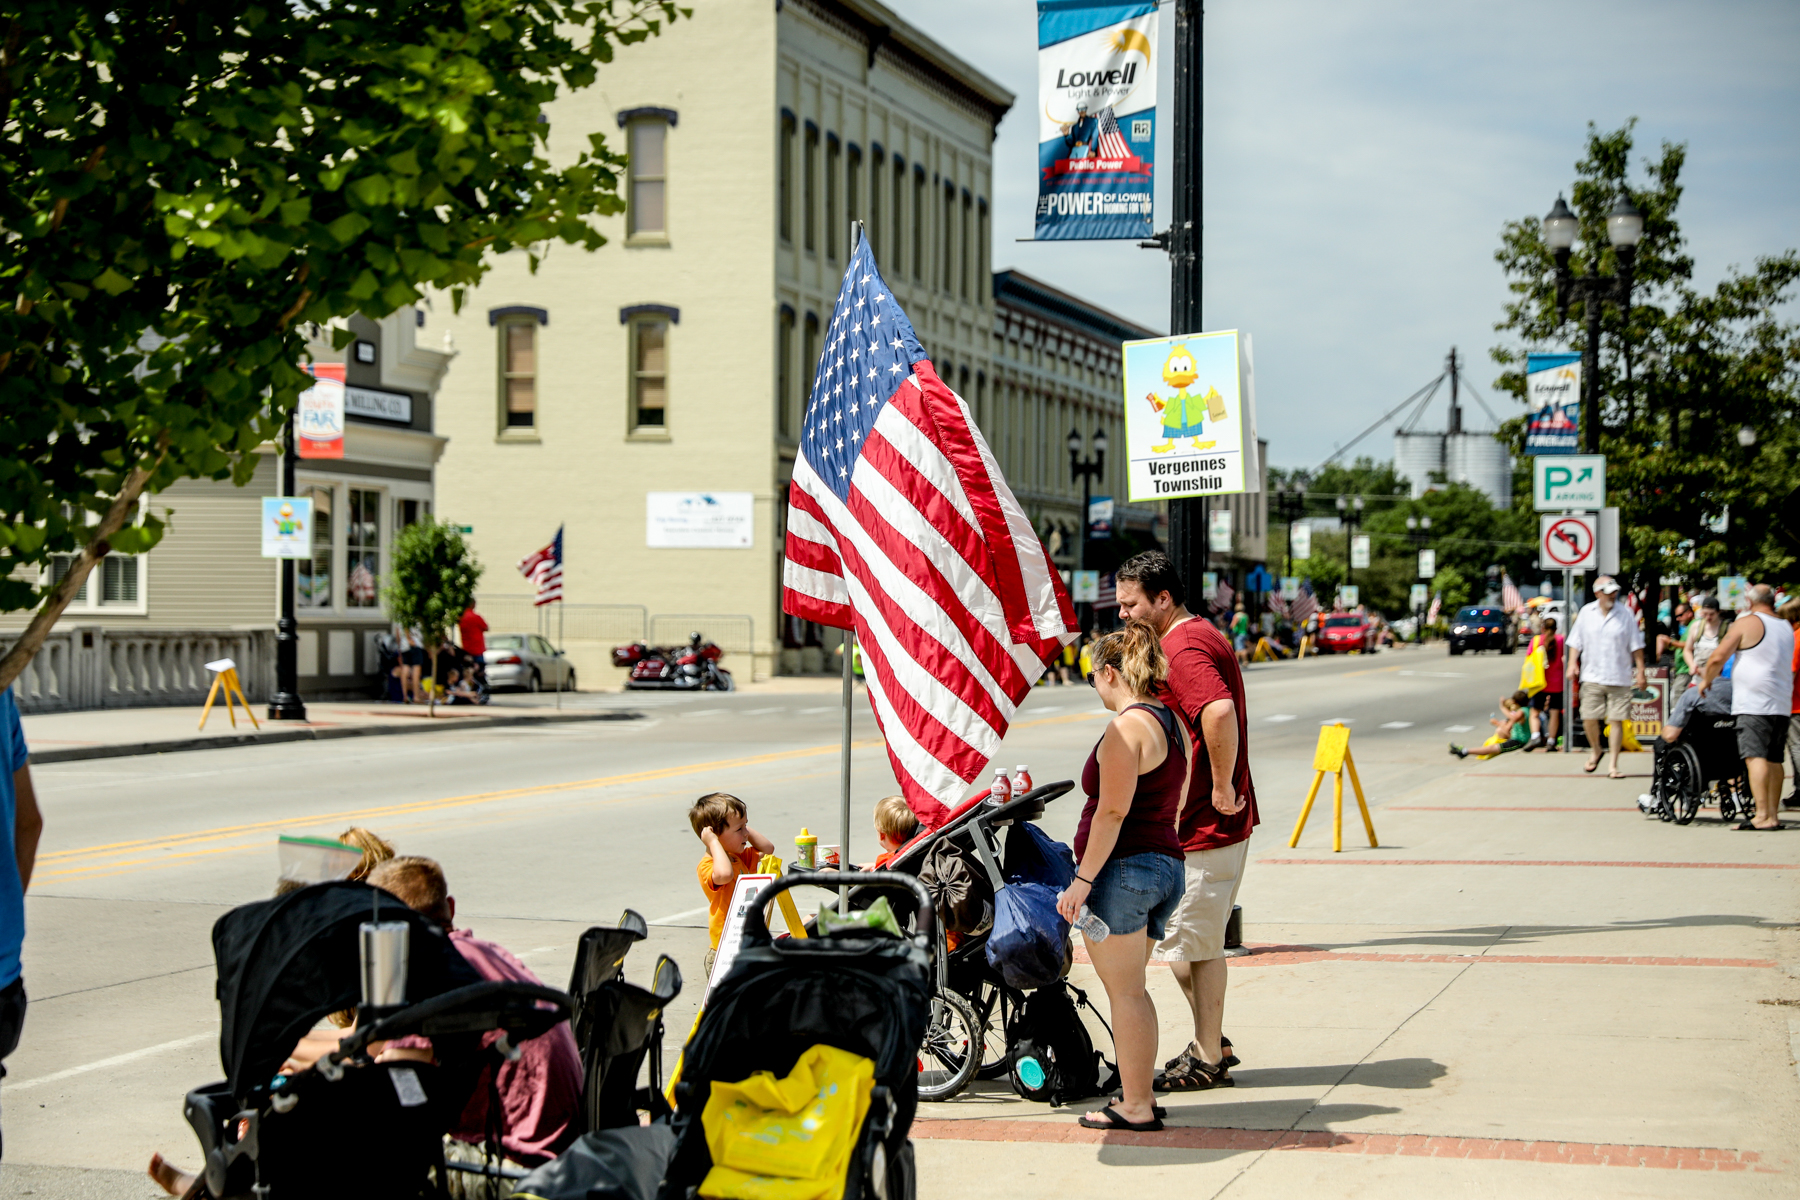 People come out for the Lowell Riverwalk Festival on July 13, 2019. (Michael Buck/WOOD TV8)